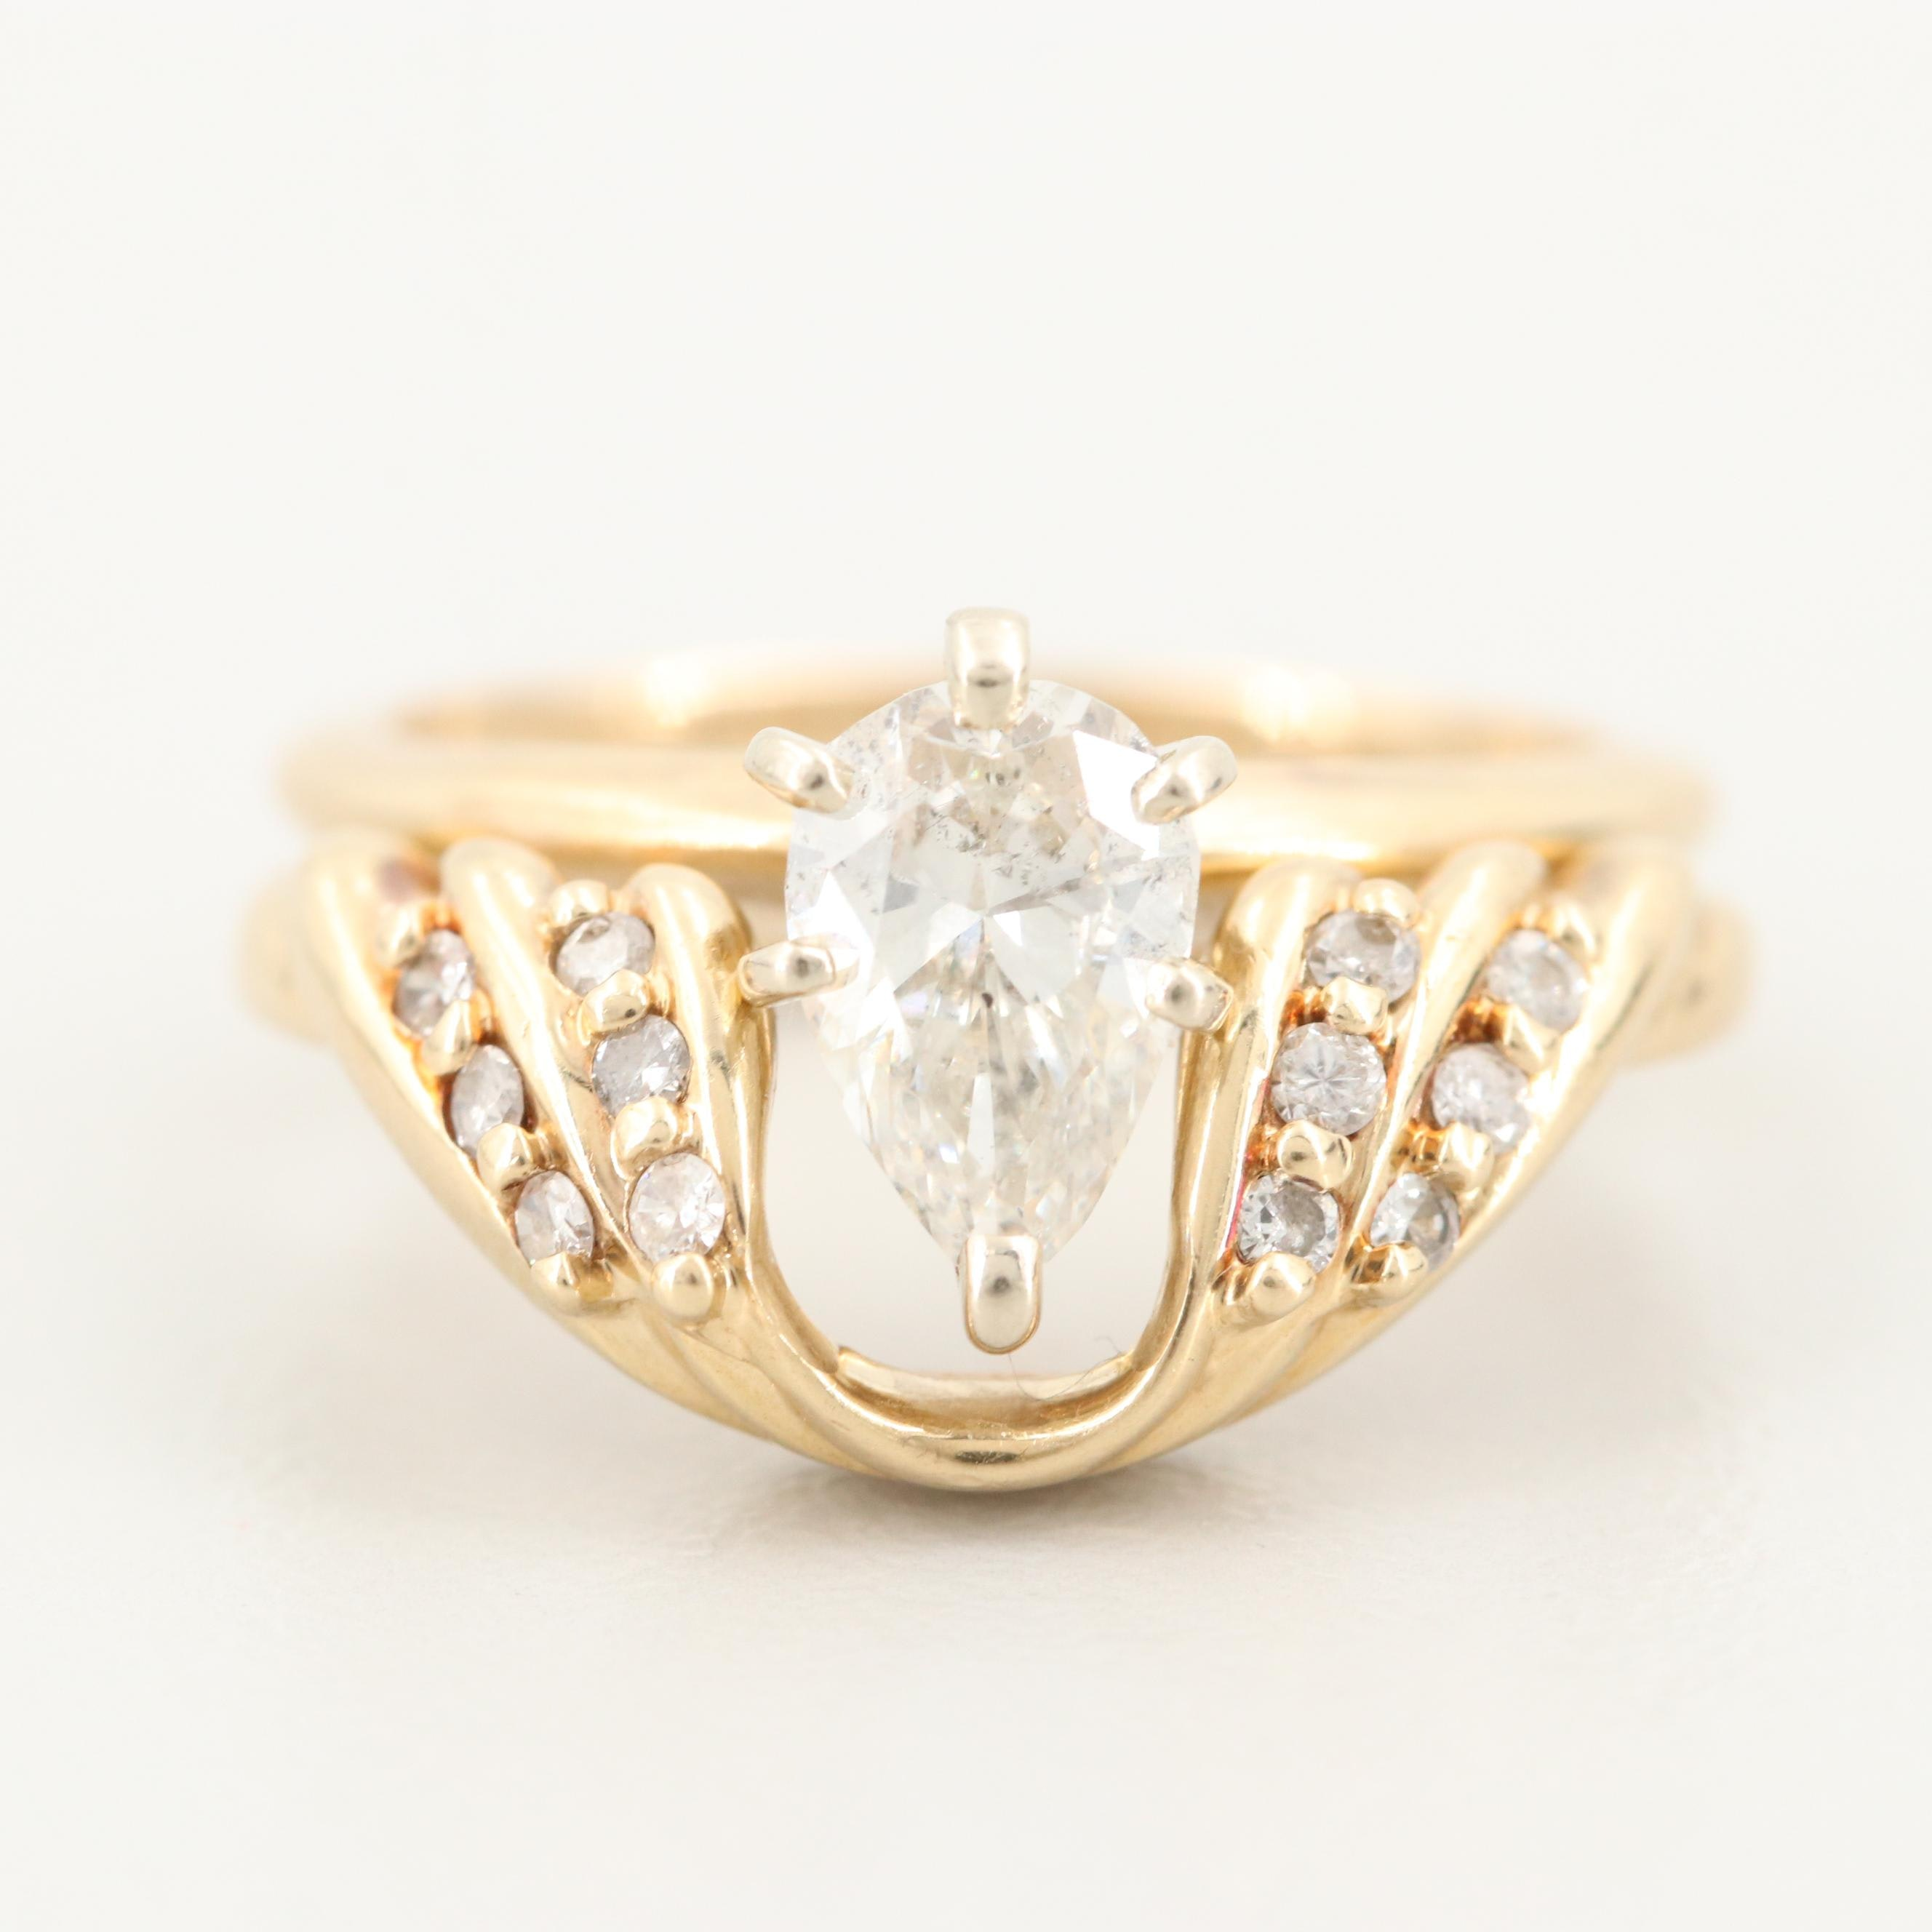 14K Yellow Gold Diamond Ring and Enhancer Ring